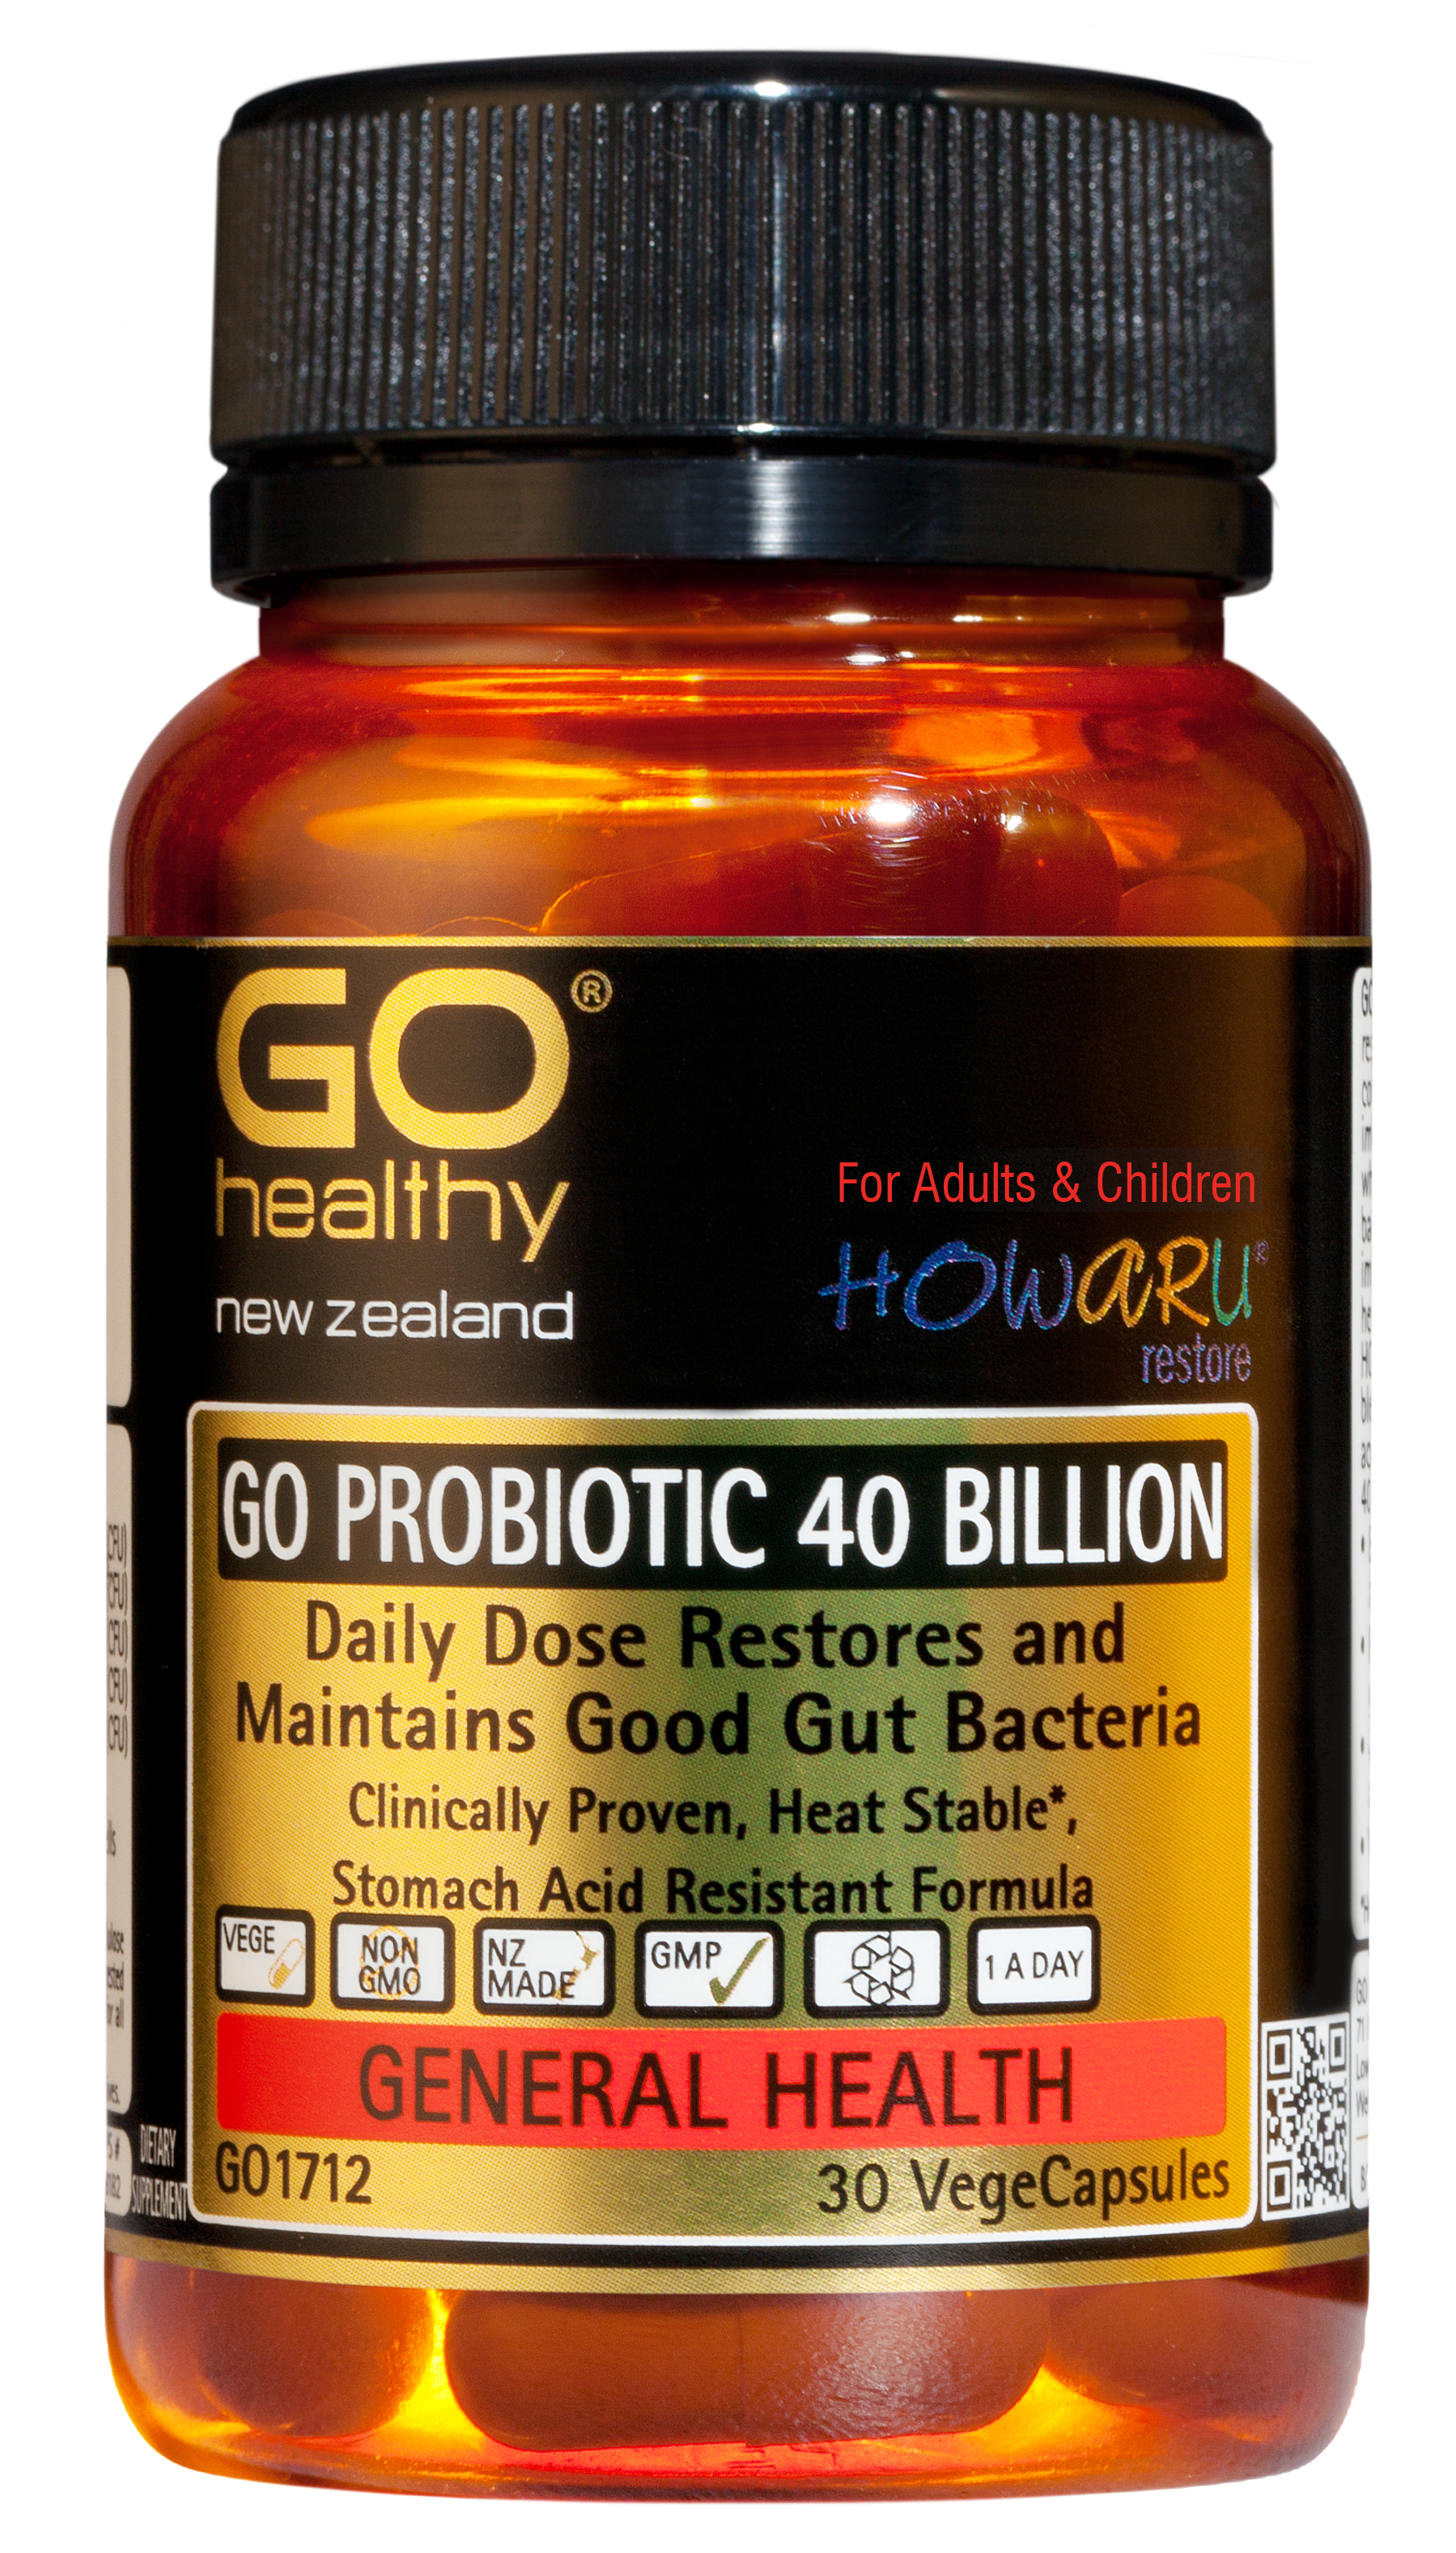 GO Healthy Probiotic 40 Billion 30 VegeCaps